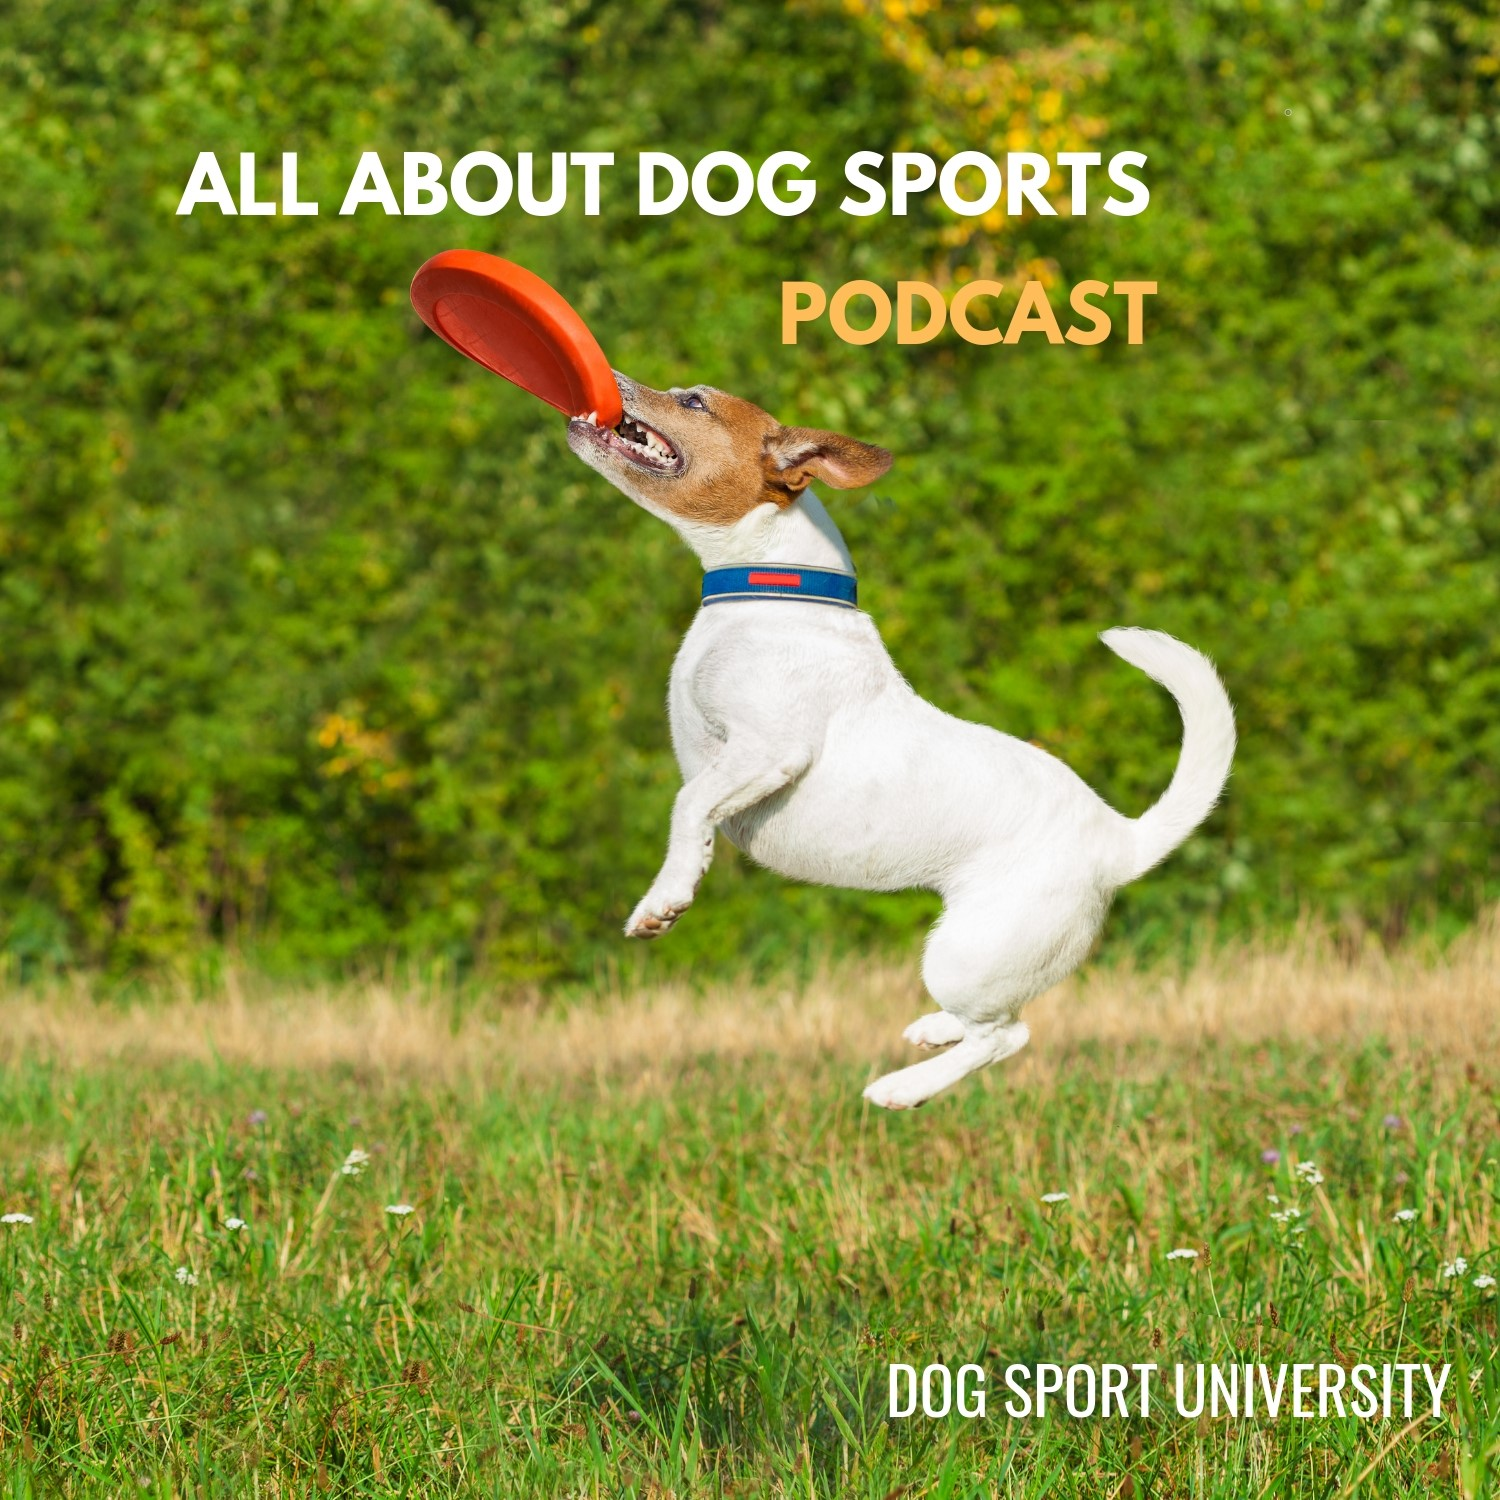 All About Dog Sports Podcast